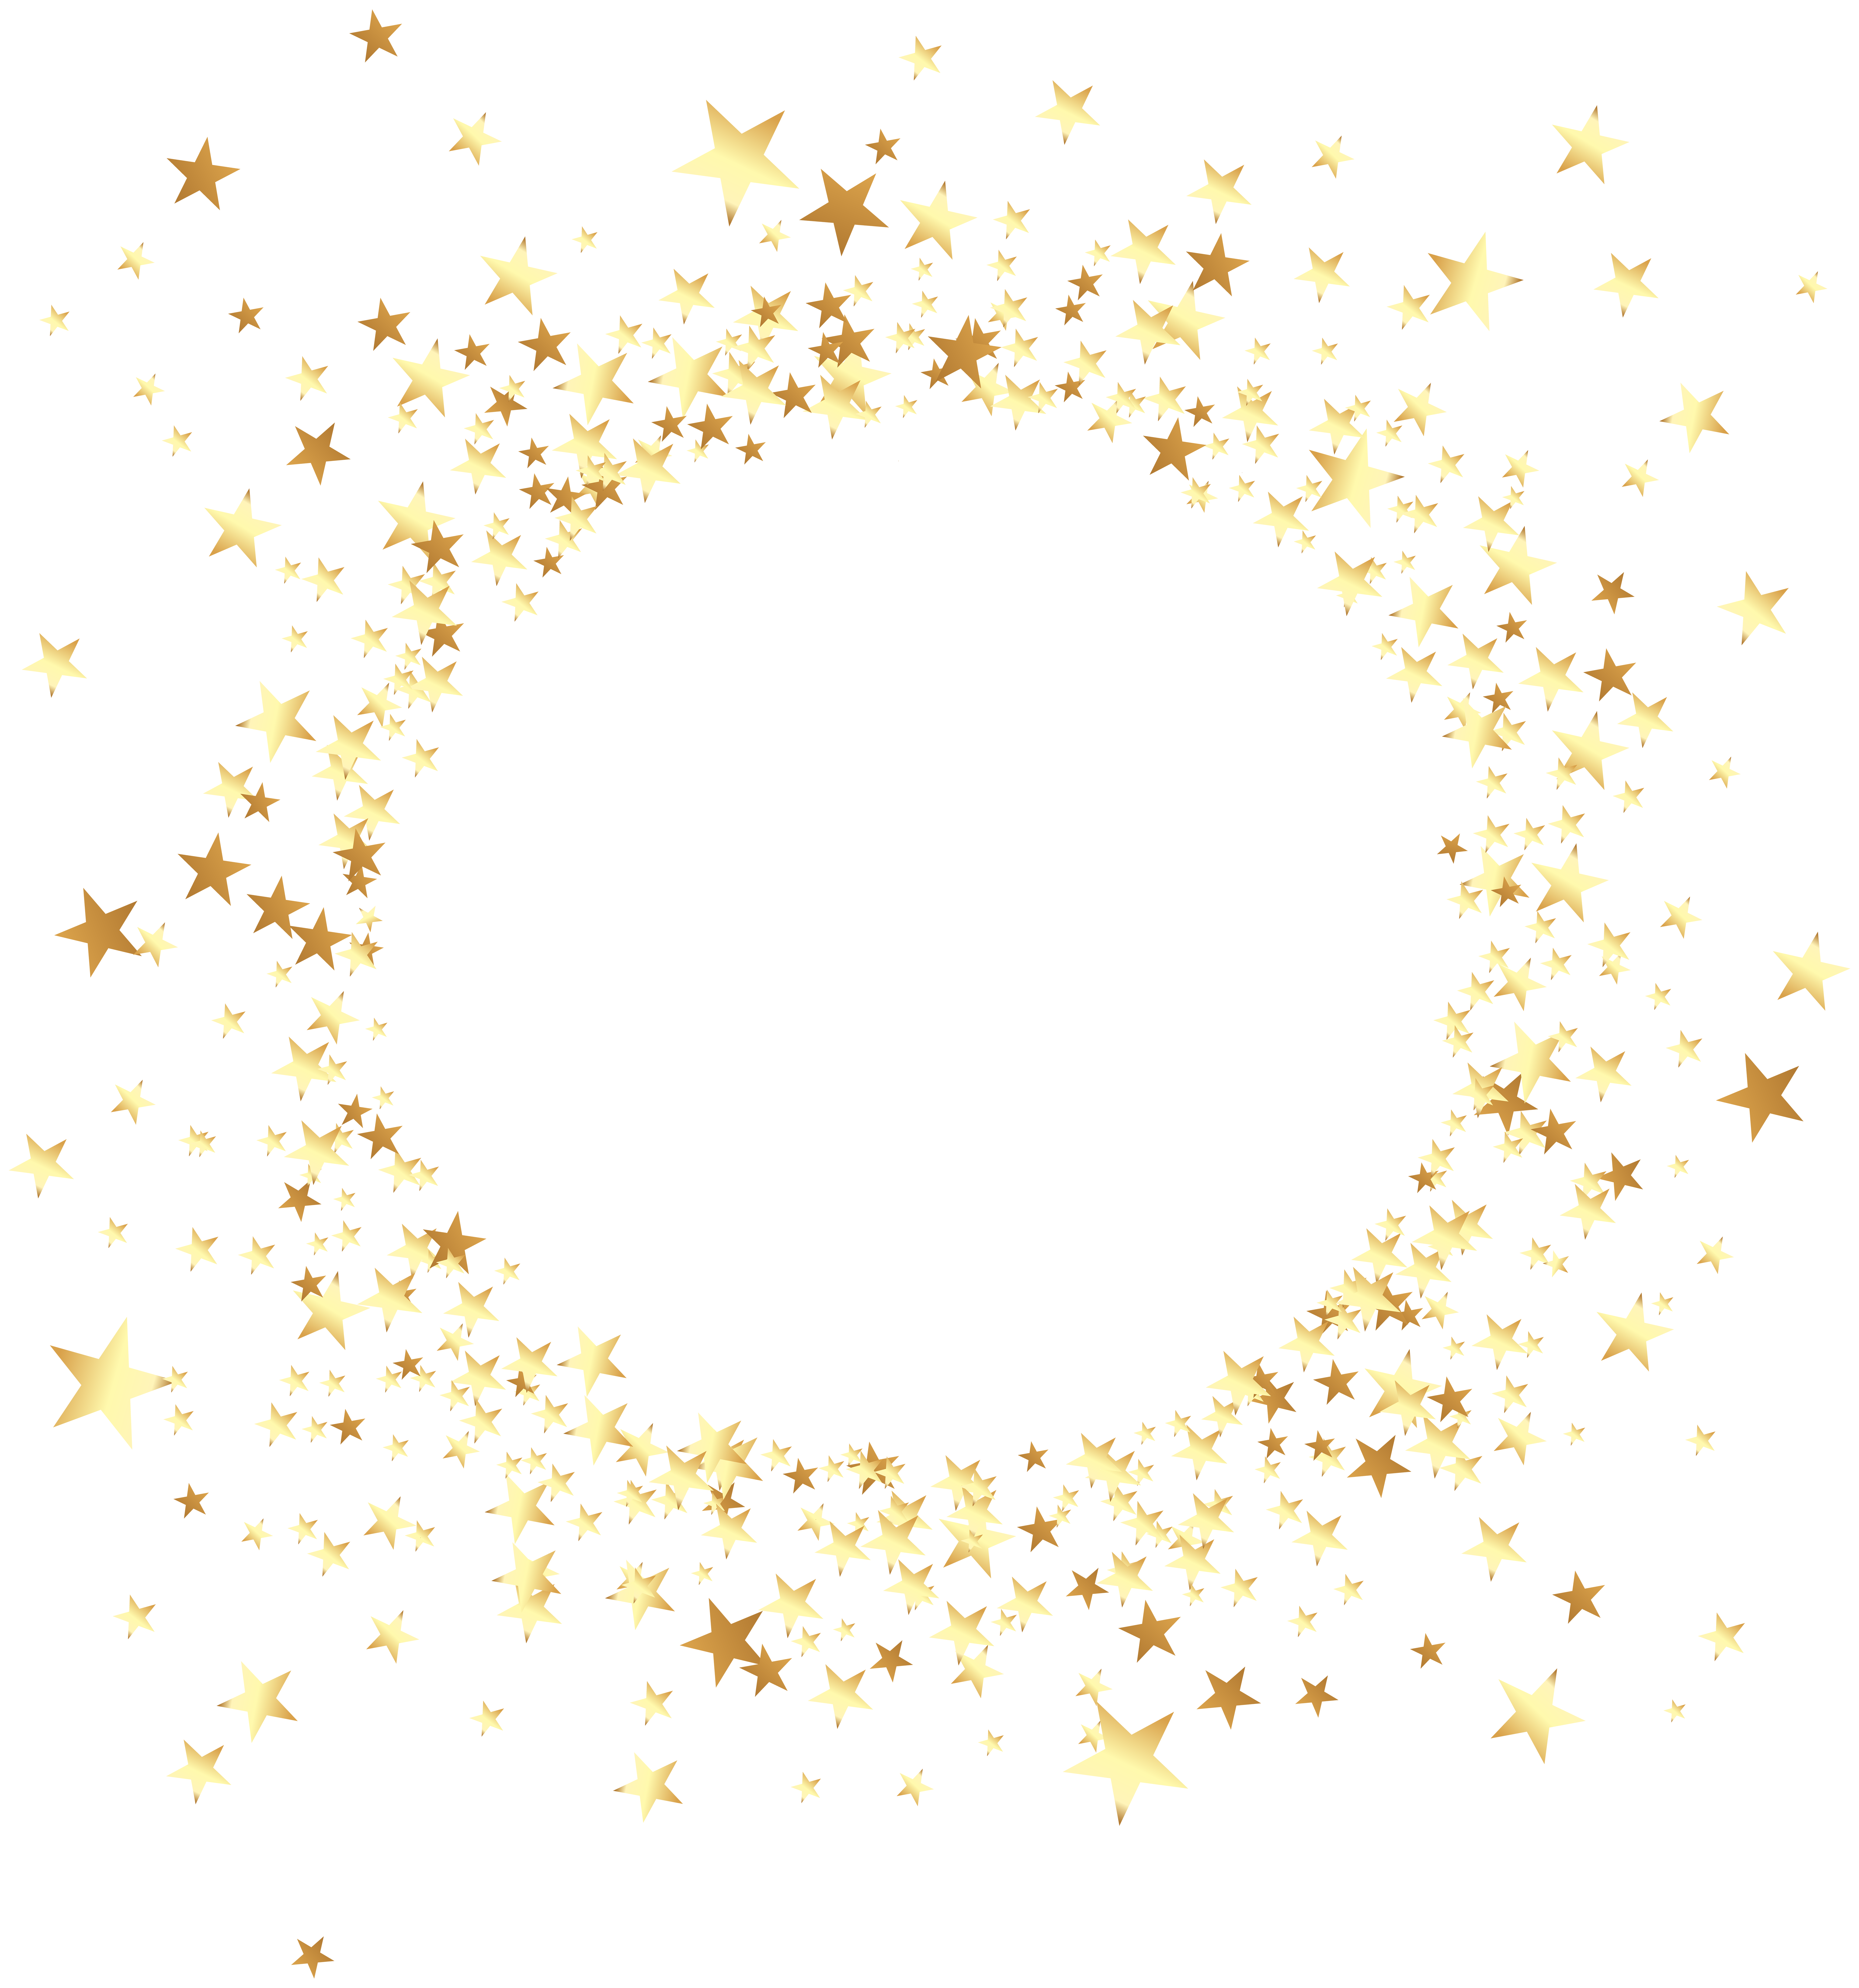 Decorative Round Element with Stars Transparent Clip Art | Gallery ... vector royalty free library